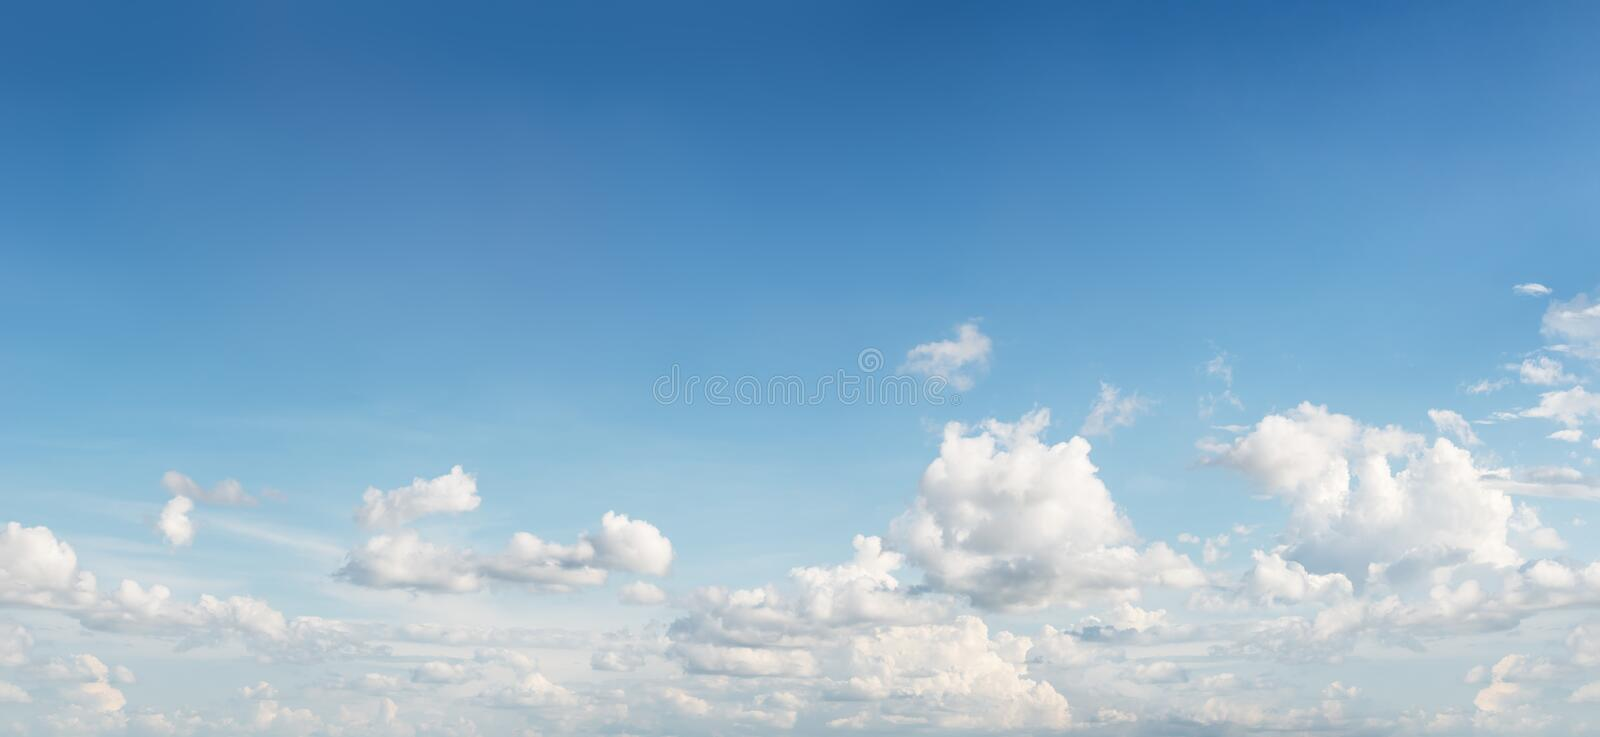 Cloud shape on sky. Motion blur cloud shape on blue sky for background material stock images